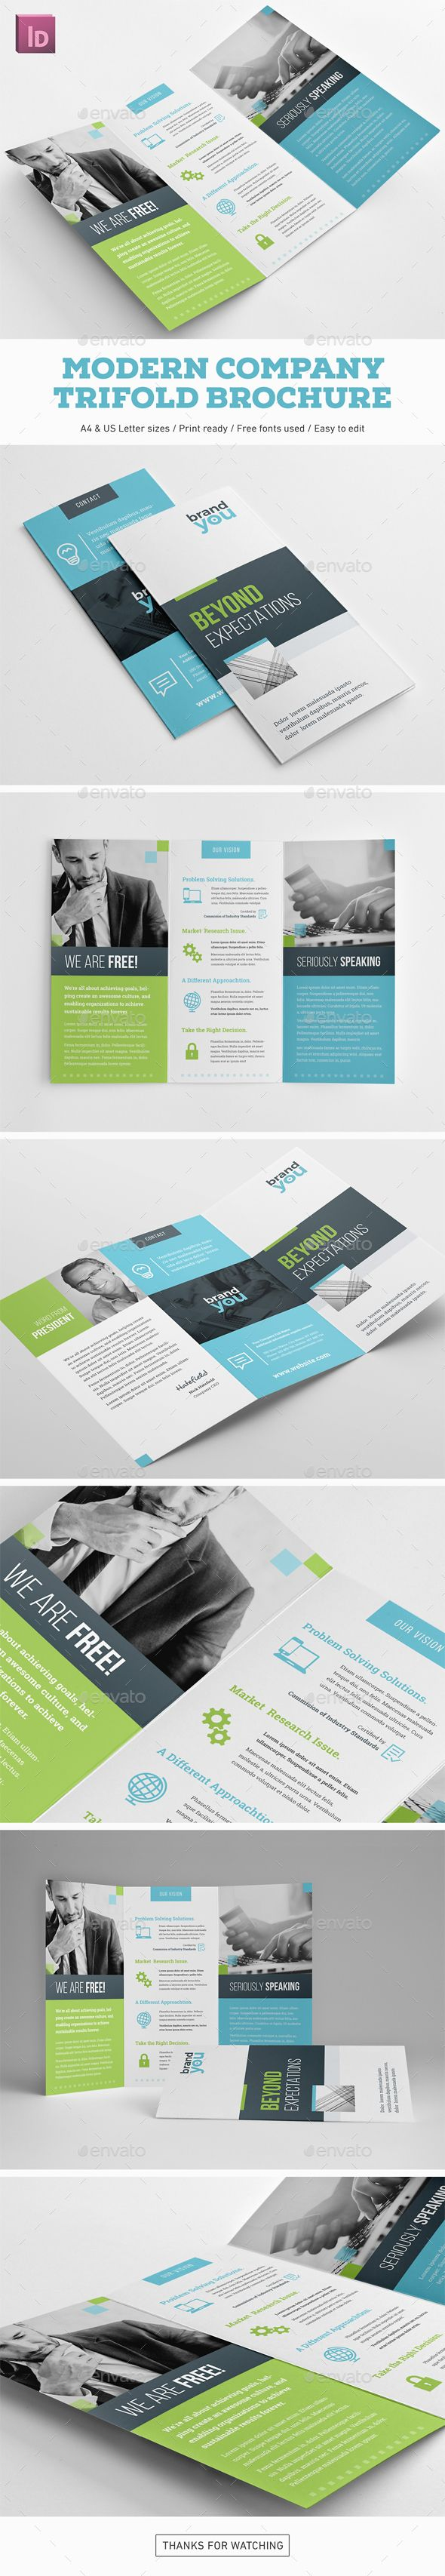 Modern Company Trifold Brochure Highly editable InDesign trifold brochure template. Easy to customize with styles and swatches. Clean visual structure and professional typography. Specification: Fully editable .indd (CS5 or higher) and .idml (CS4) files Two sizes A4 & US Letter included Print ready: 300 DPI, CMYK Color Mode, Bleed Text, color and images changeable Organized layers, easy to edit Editable sample logotype